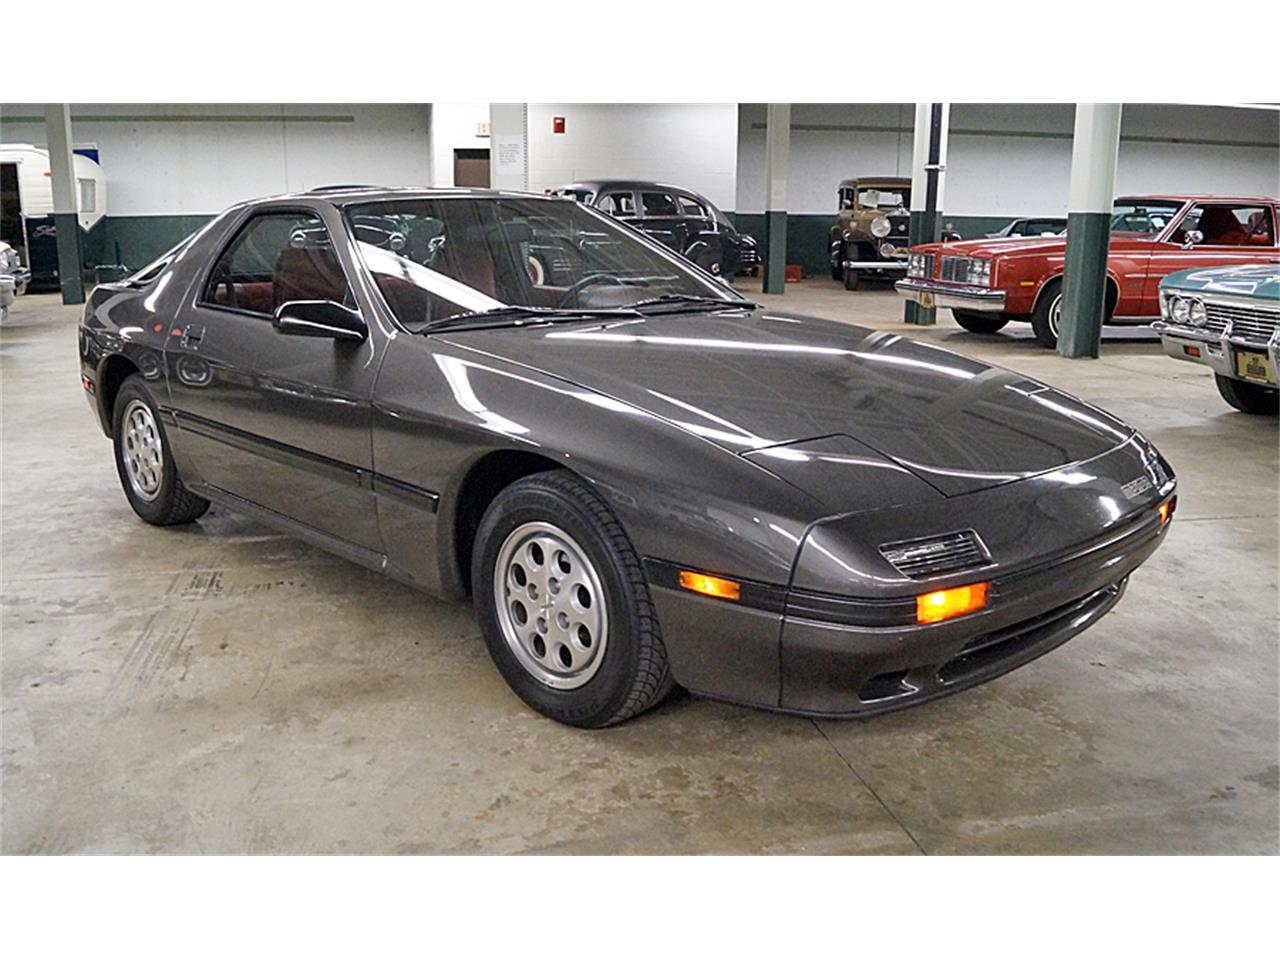 1987 mazda rx se rx7 classic cc financing inspection insurance transport canton ohio classiccars